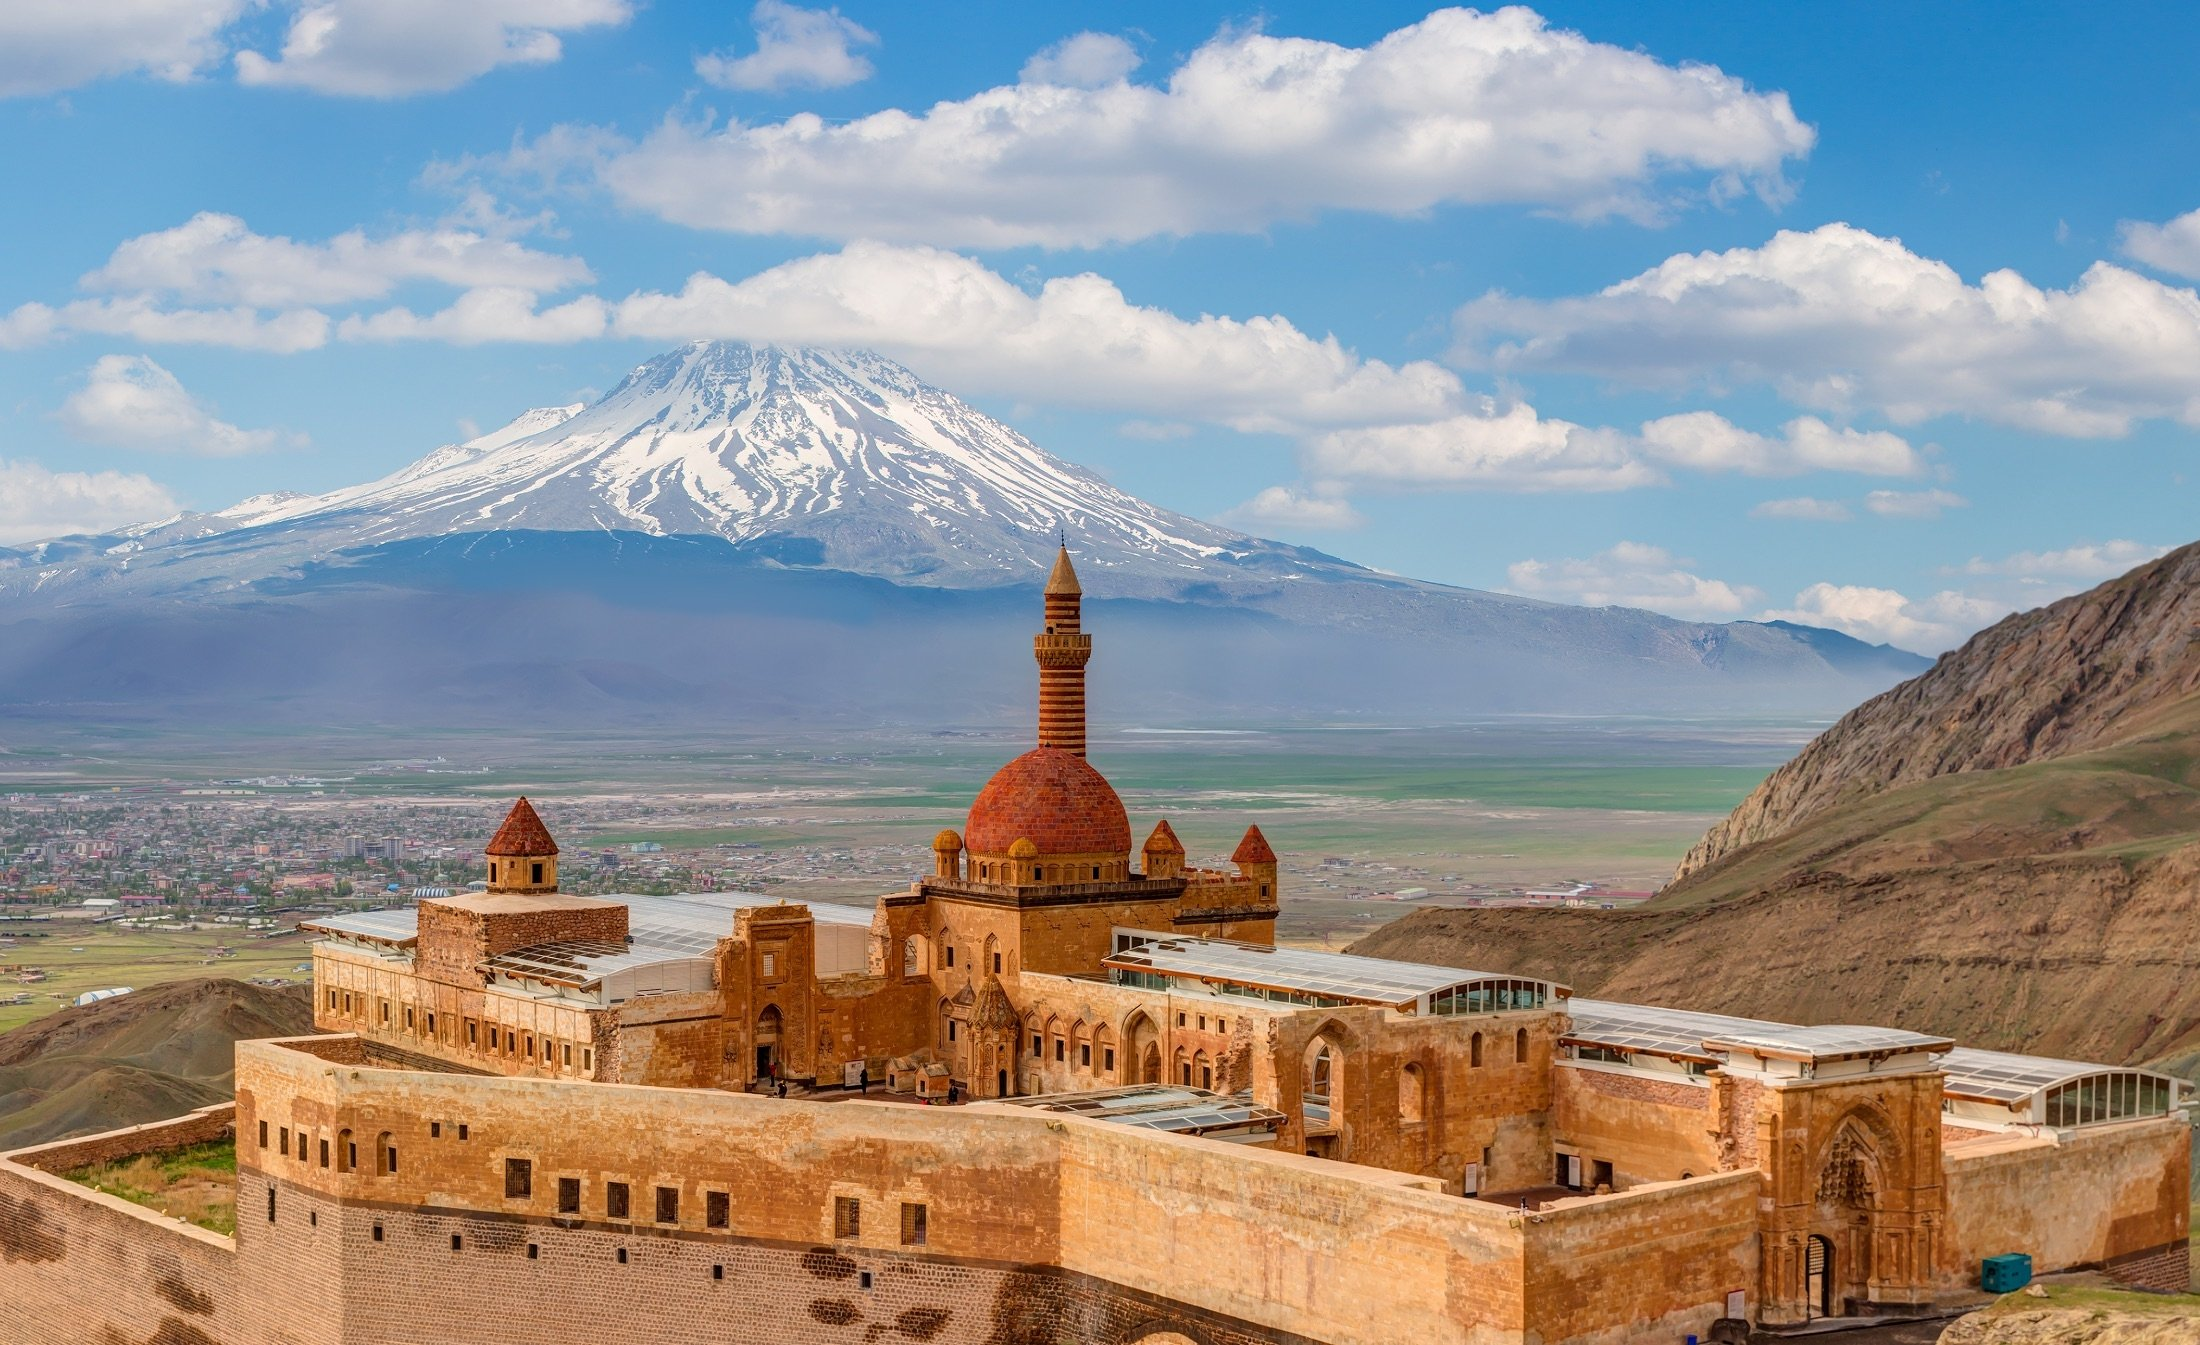 Ishak Pasha palace can be seen with Mount Ararat (Ağrı) in the background, Doğubeyazıt district of Ağrı province, eastern Turkey. (Shutterstock Photo)